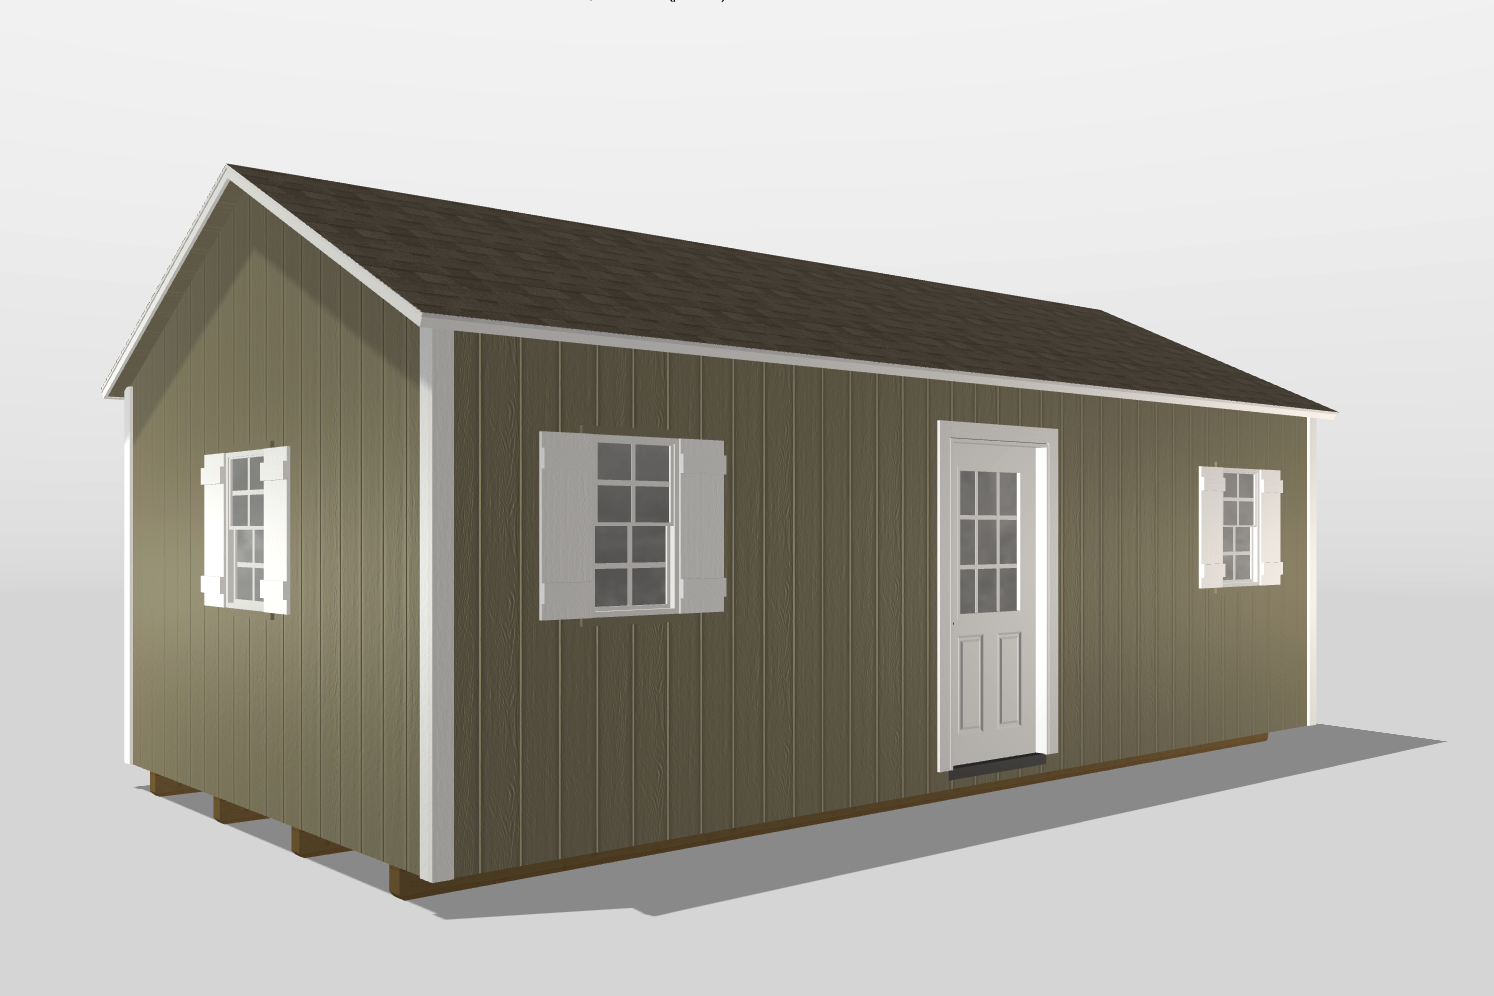 12x24 shed for living vidalia ga